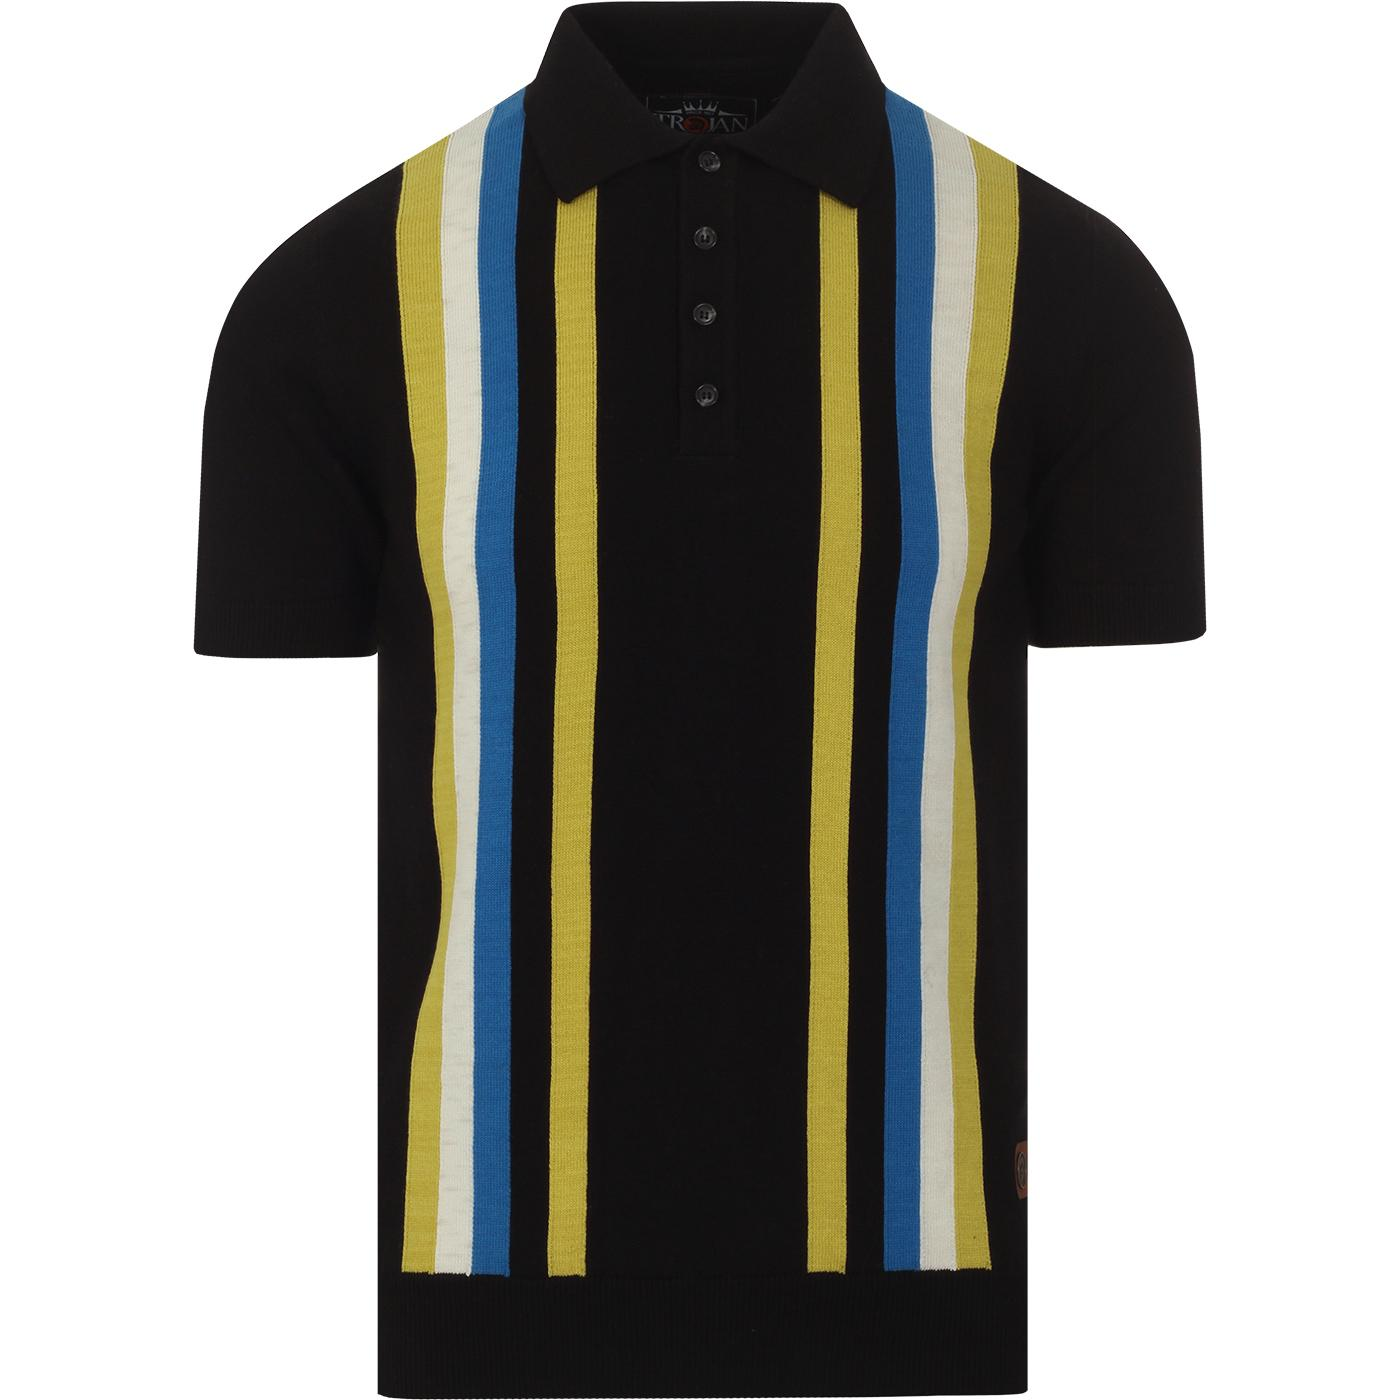 TROJAN RECORDS Mod Multi Stripe Knit Polo Top (B)